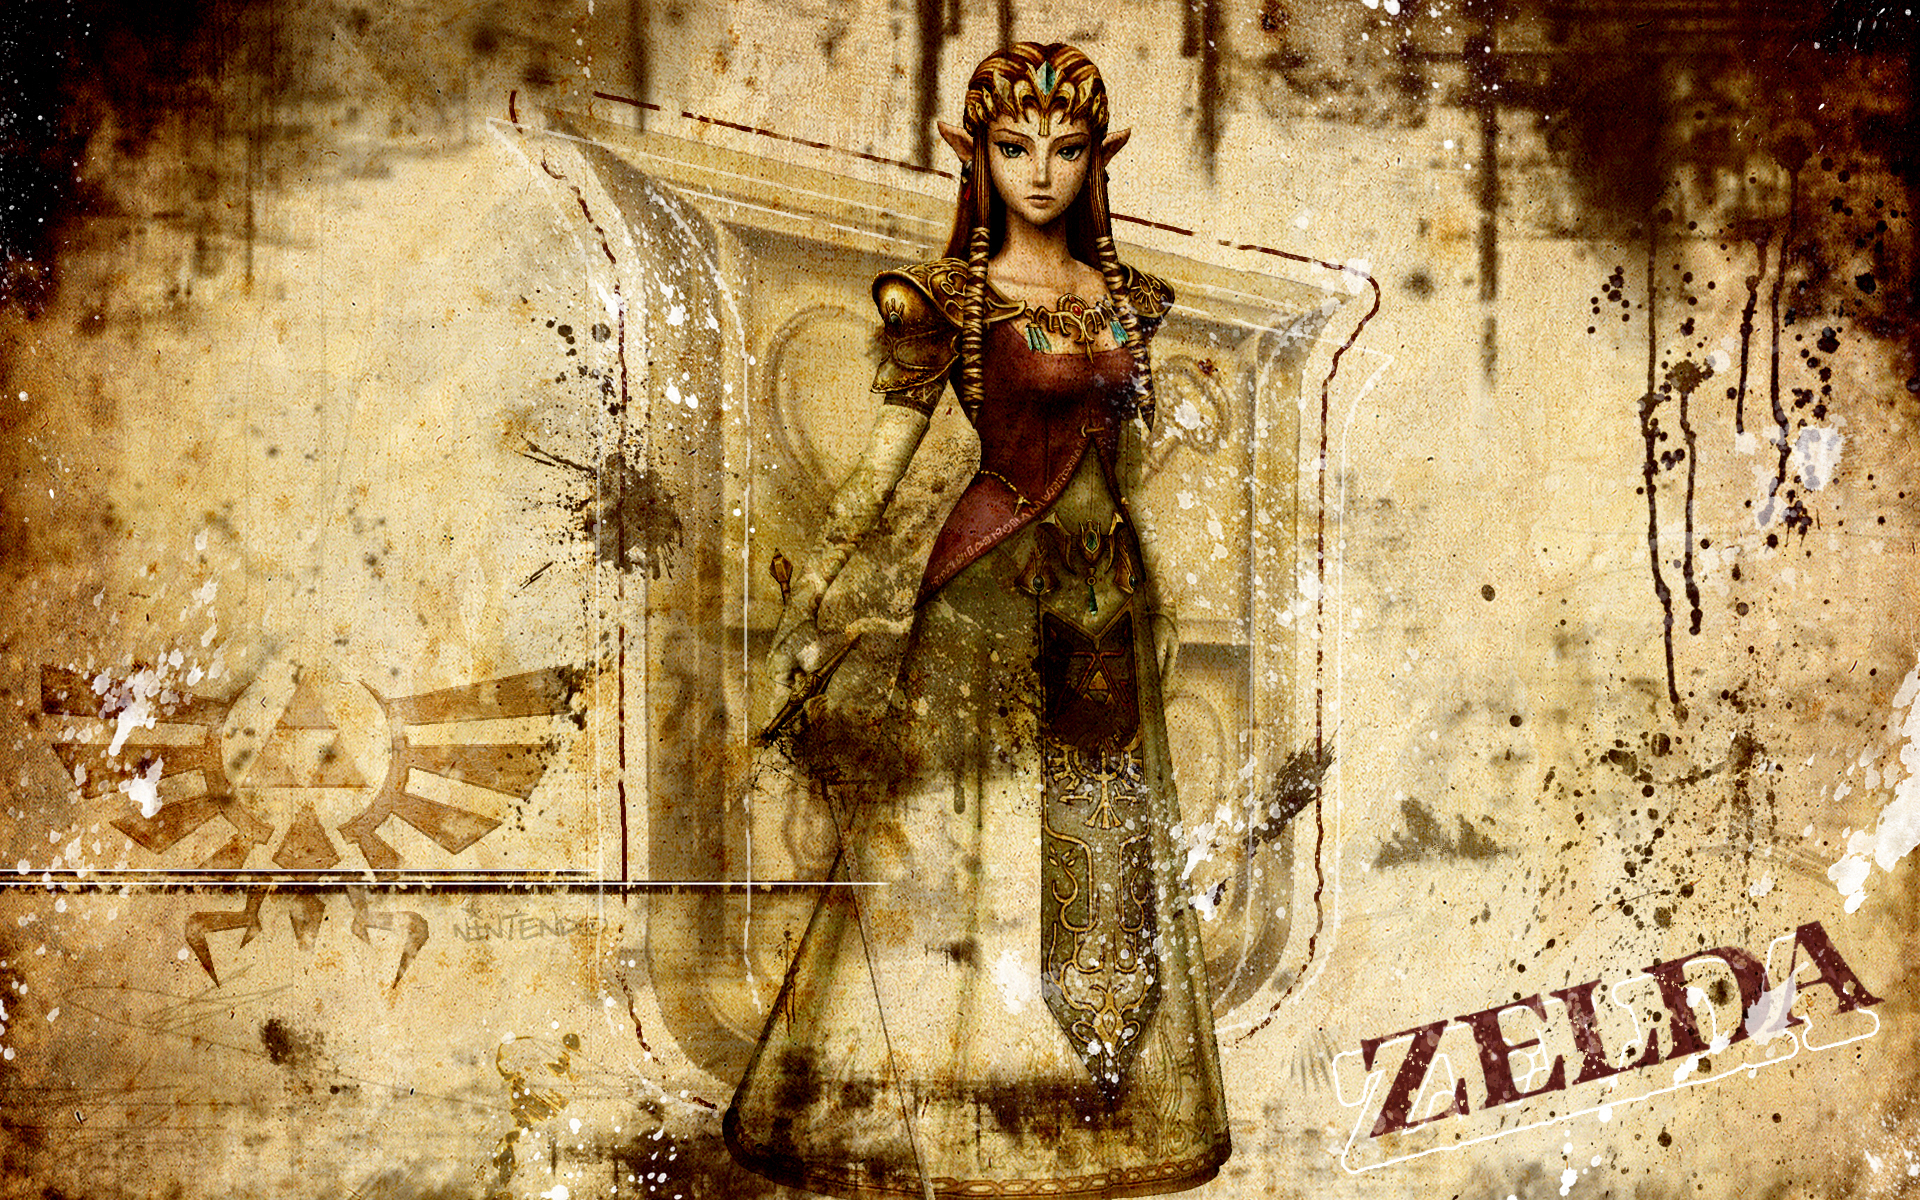 zelda the legend of zelda wallpaper 2833164 fanpop